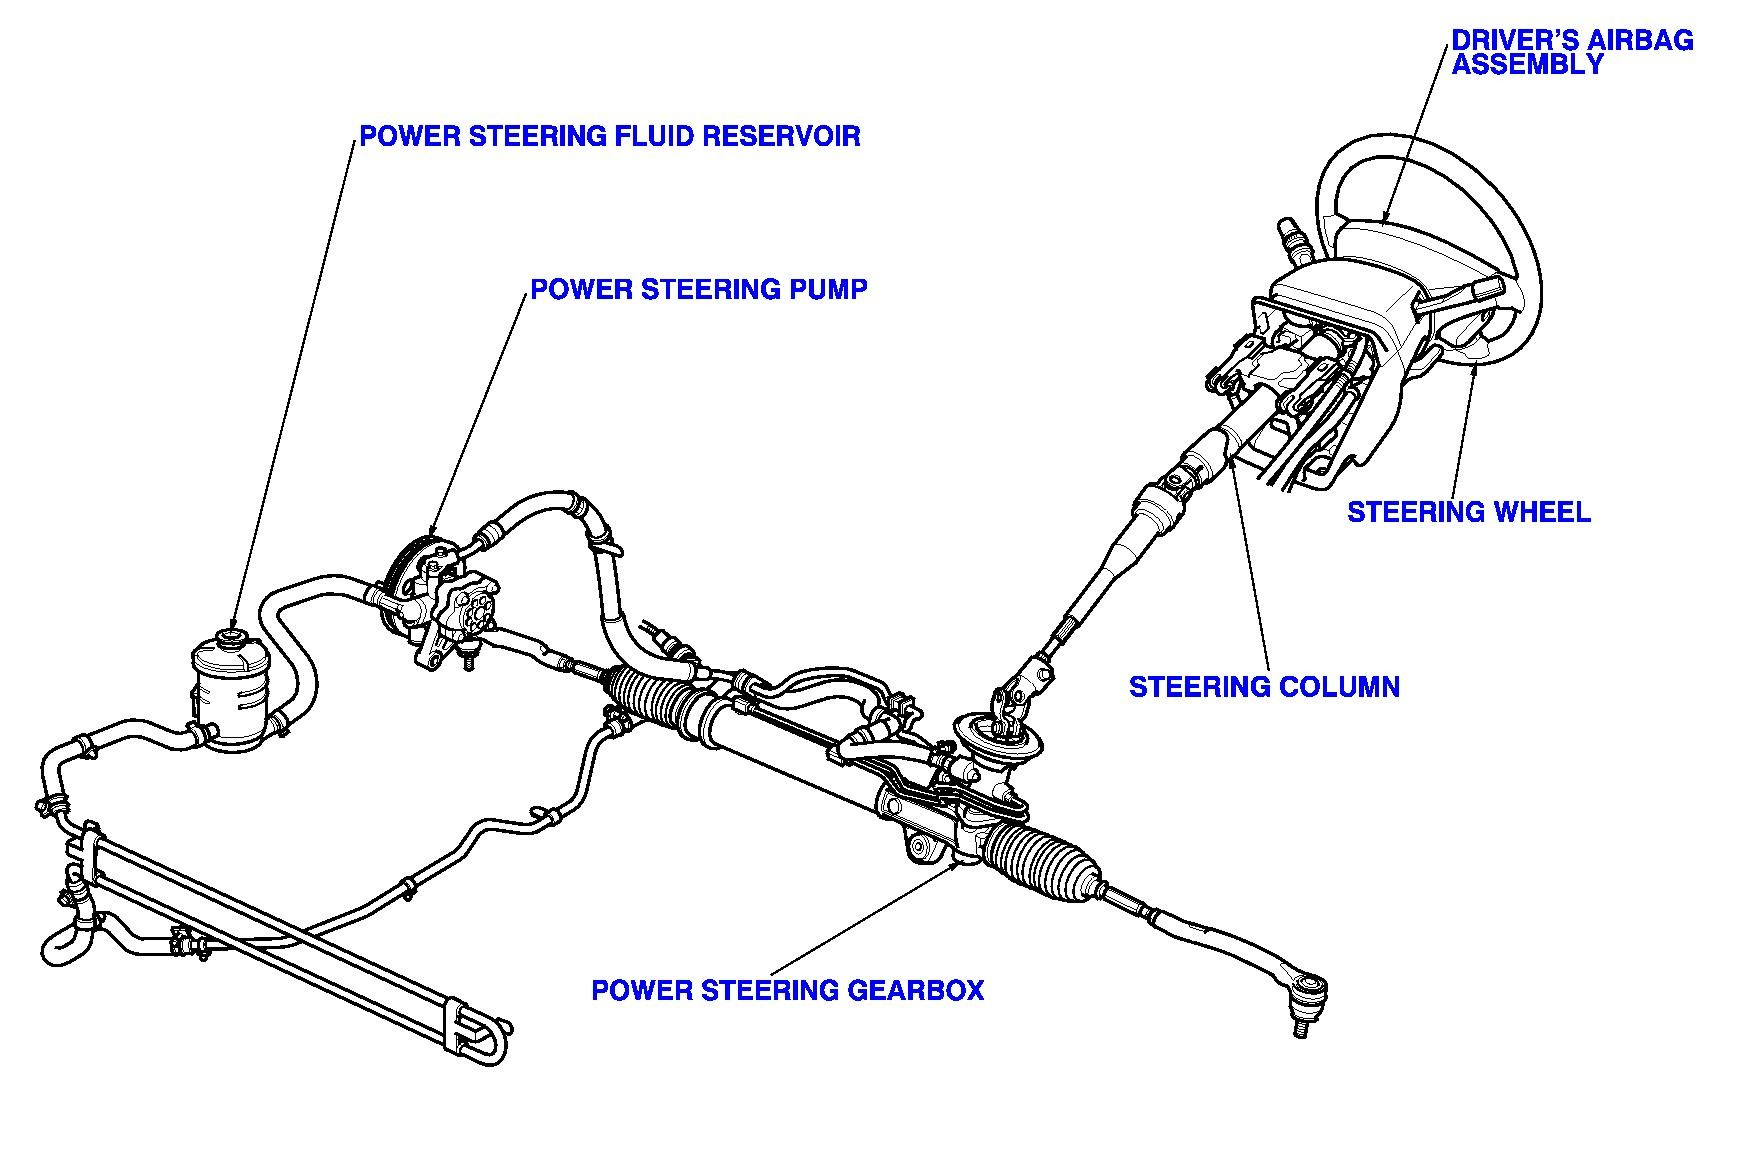 Hydraulic Steering Diagram Fluid Service and Replacement In Cockeysville Maryland Of Hydraulic Steering Diagram